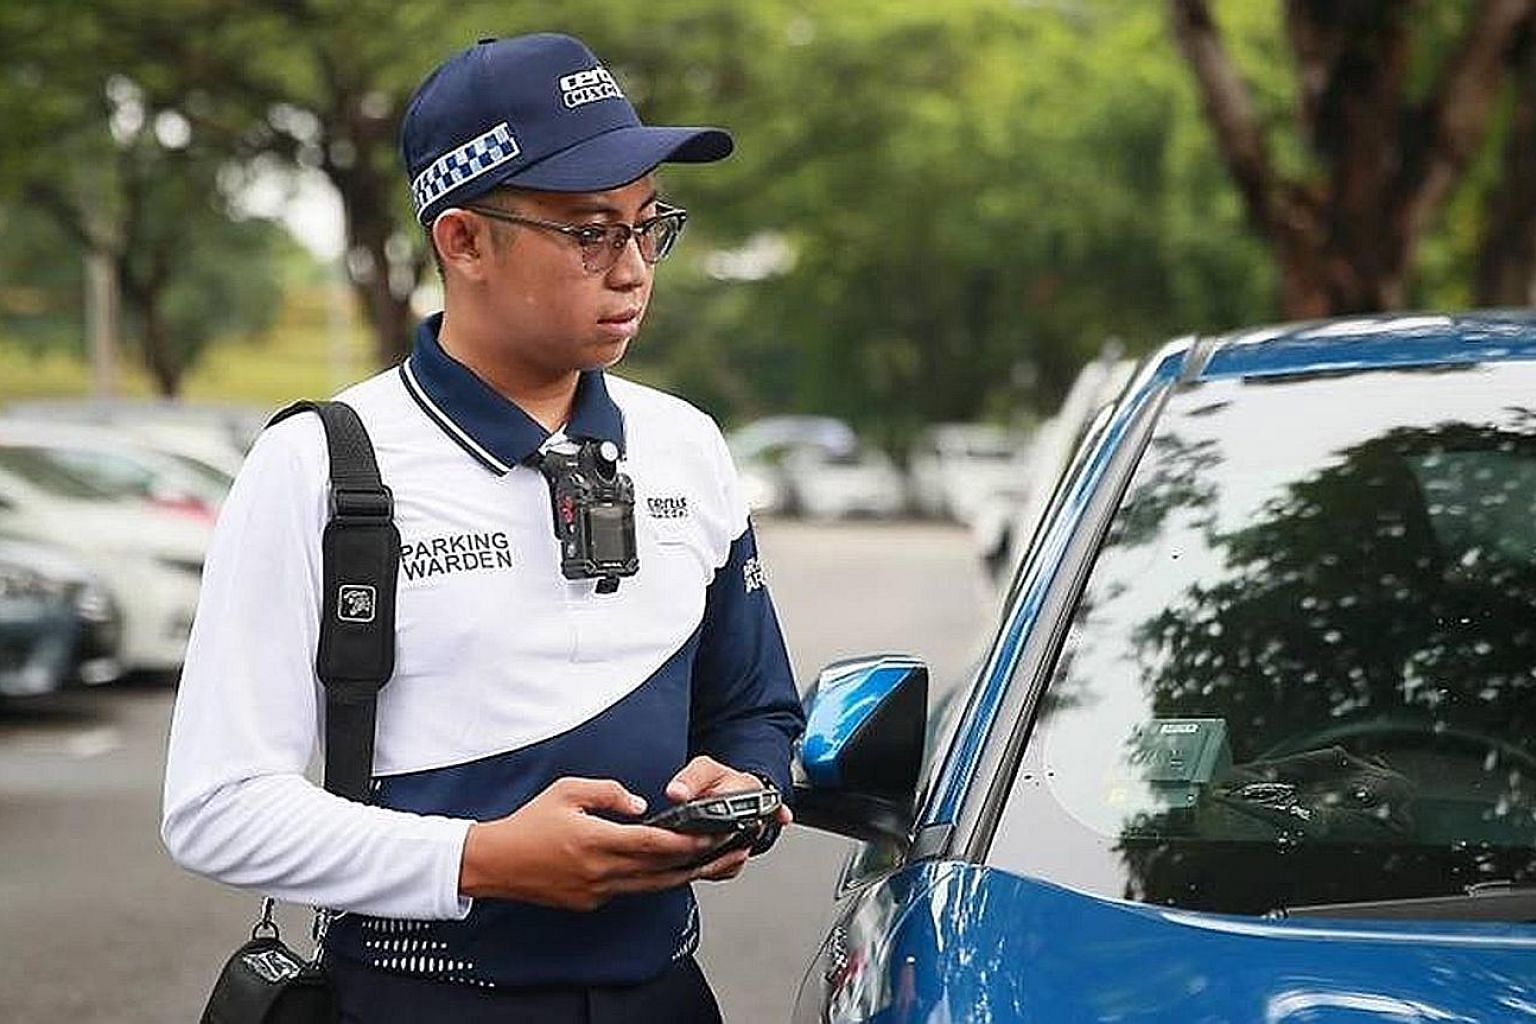 Parking wardens will don a new uniform comprising a dri-fit top and cargo pants from Aug 1, to help them cope better with the hot, humid weather.